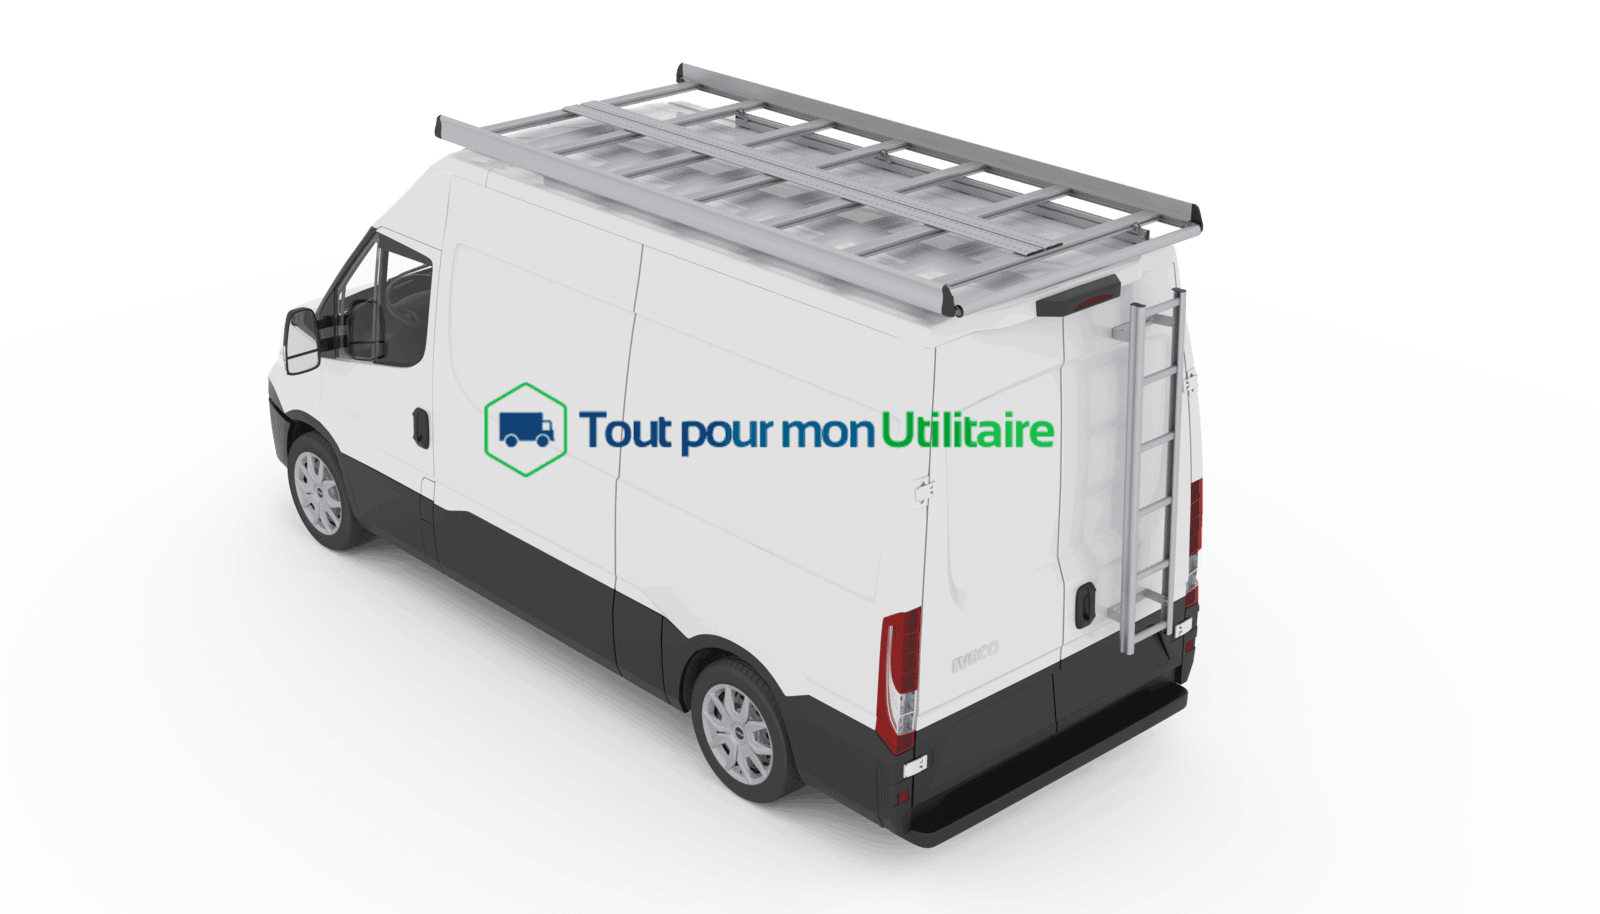 galerie aluminium iveco new daily 12m3 pour v hicule utilitaire. Black Bedroom Furniture Sets. Home Design Ideas